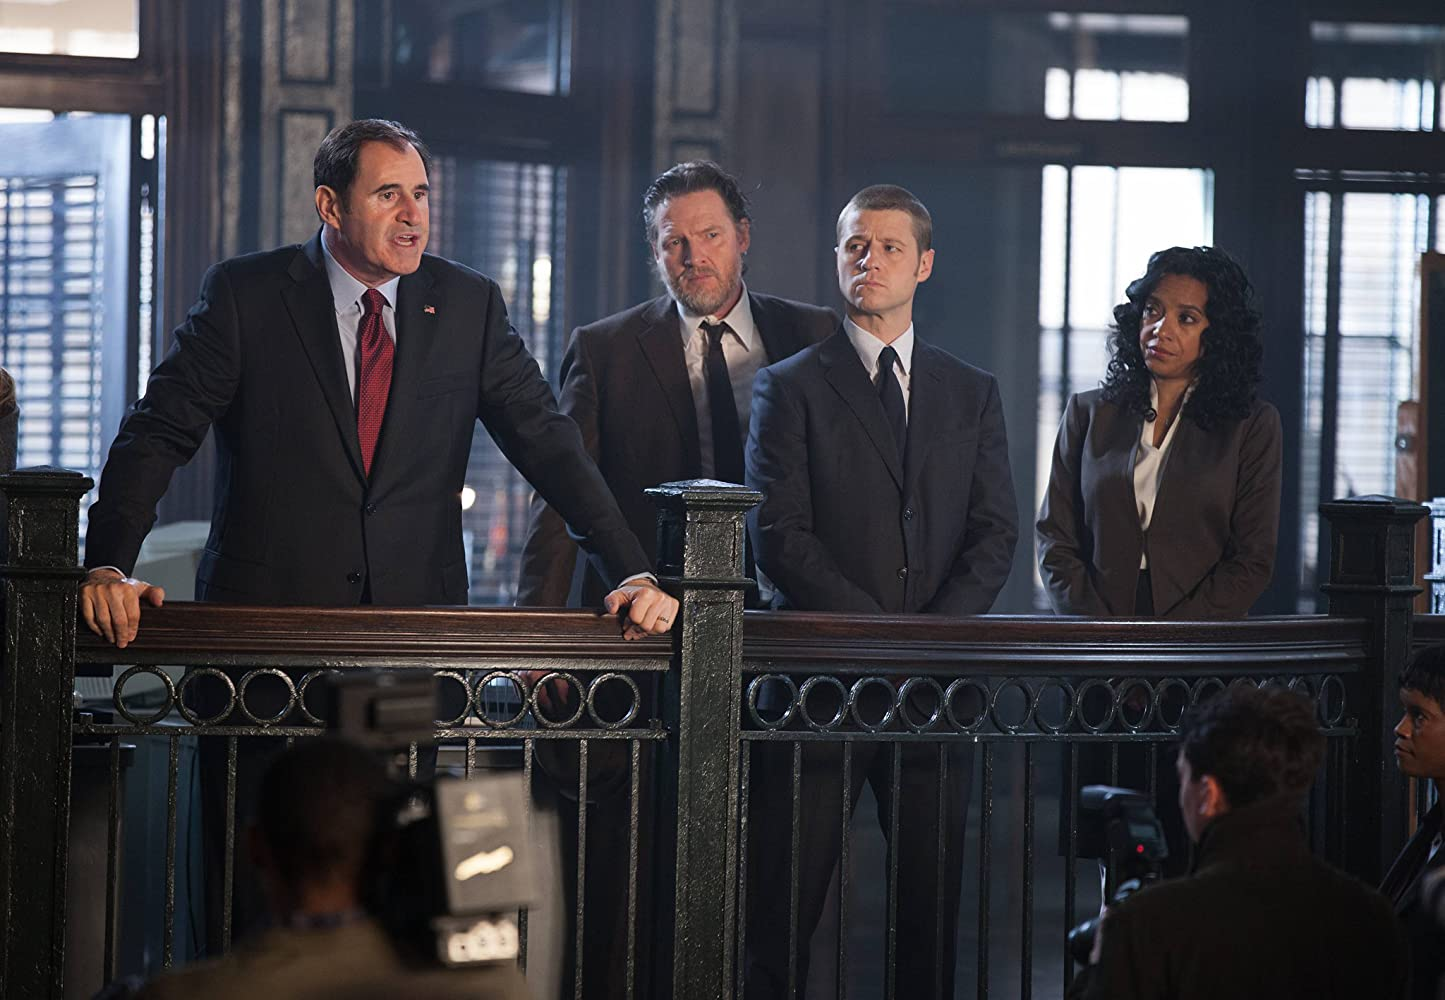 Donal Logue, Richard Kind, Ben McKenzie, and Zabryna Guevara in Gotham (2014)